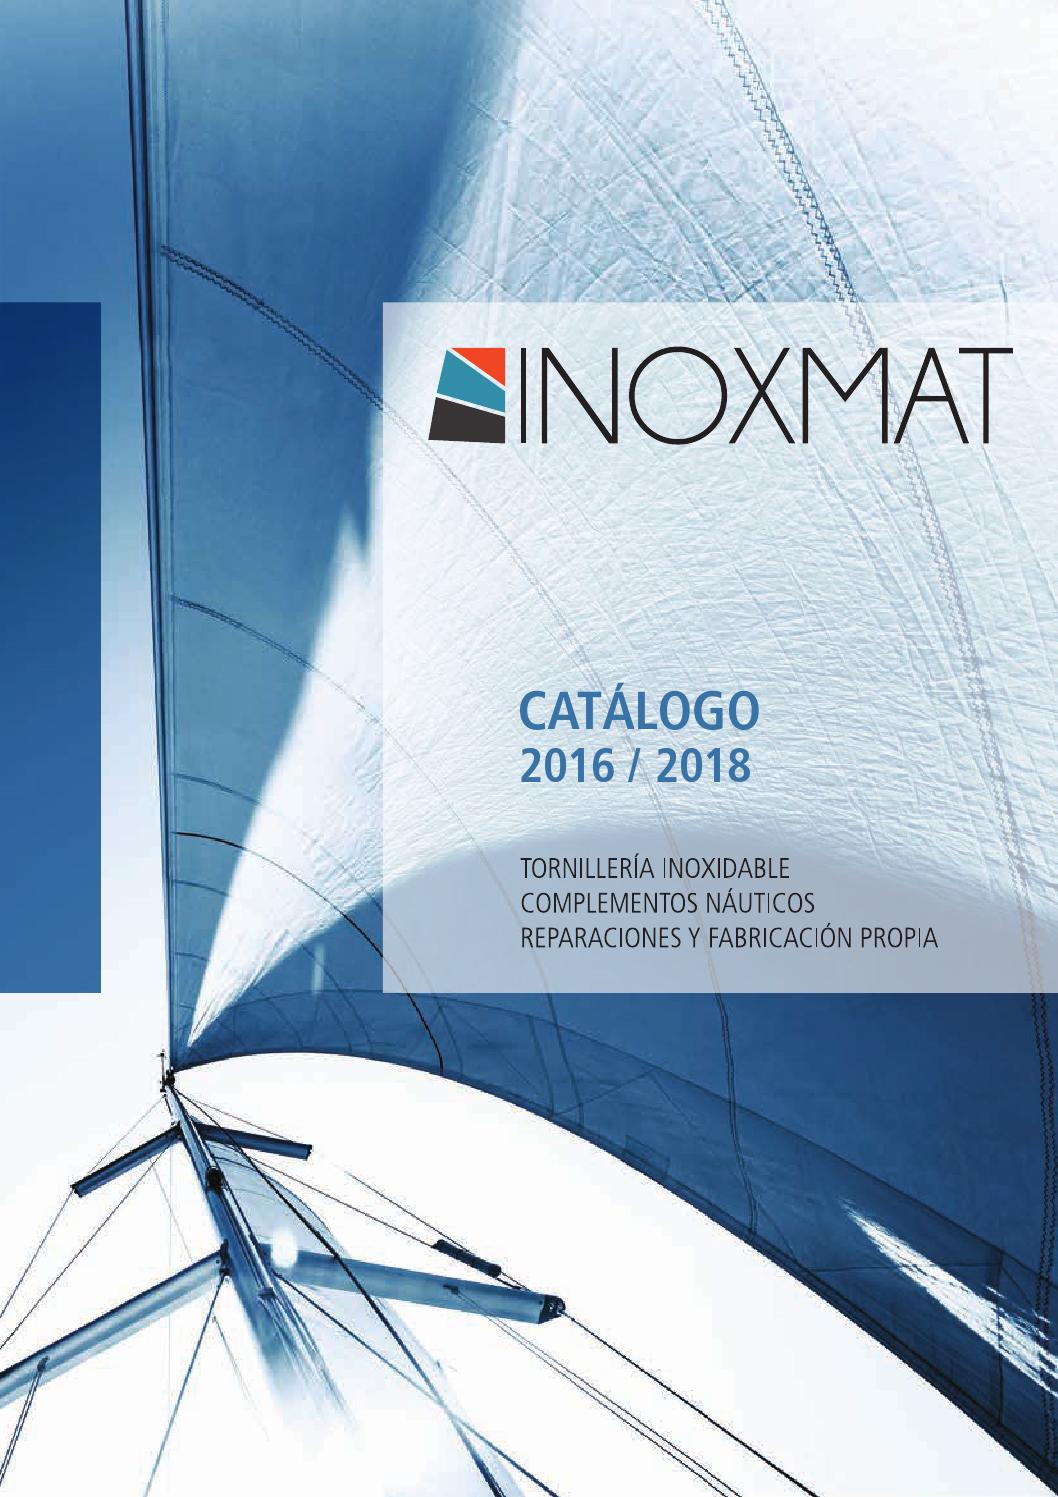 "Tornillo Hexagonal INOX A4 UNC Whitworth 5//16/""x63.50 5 unidades 18H DIN 933"